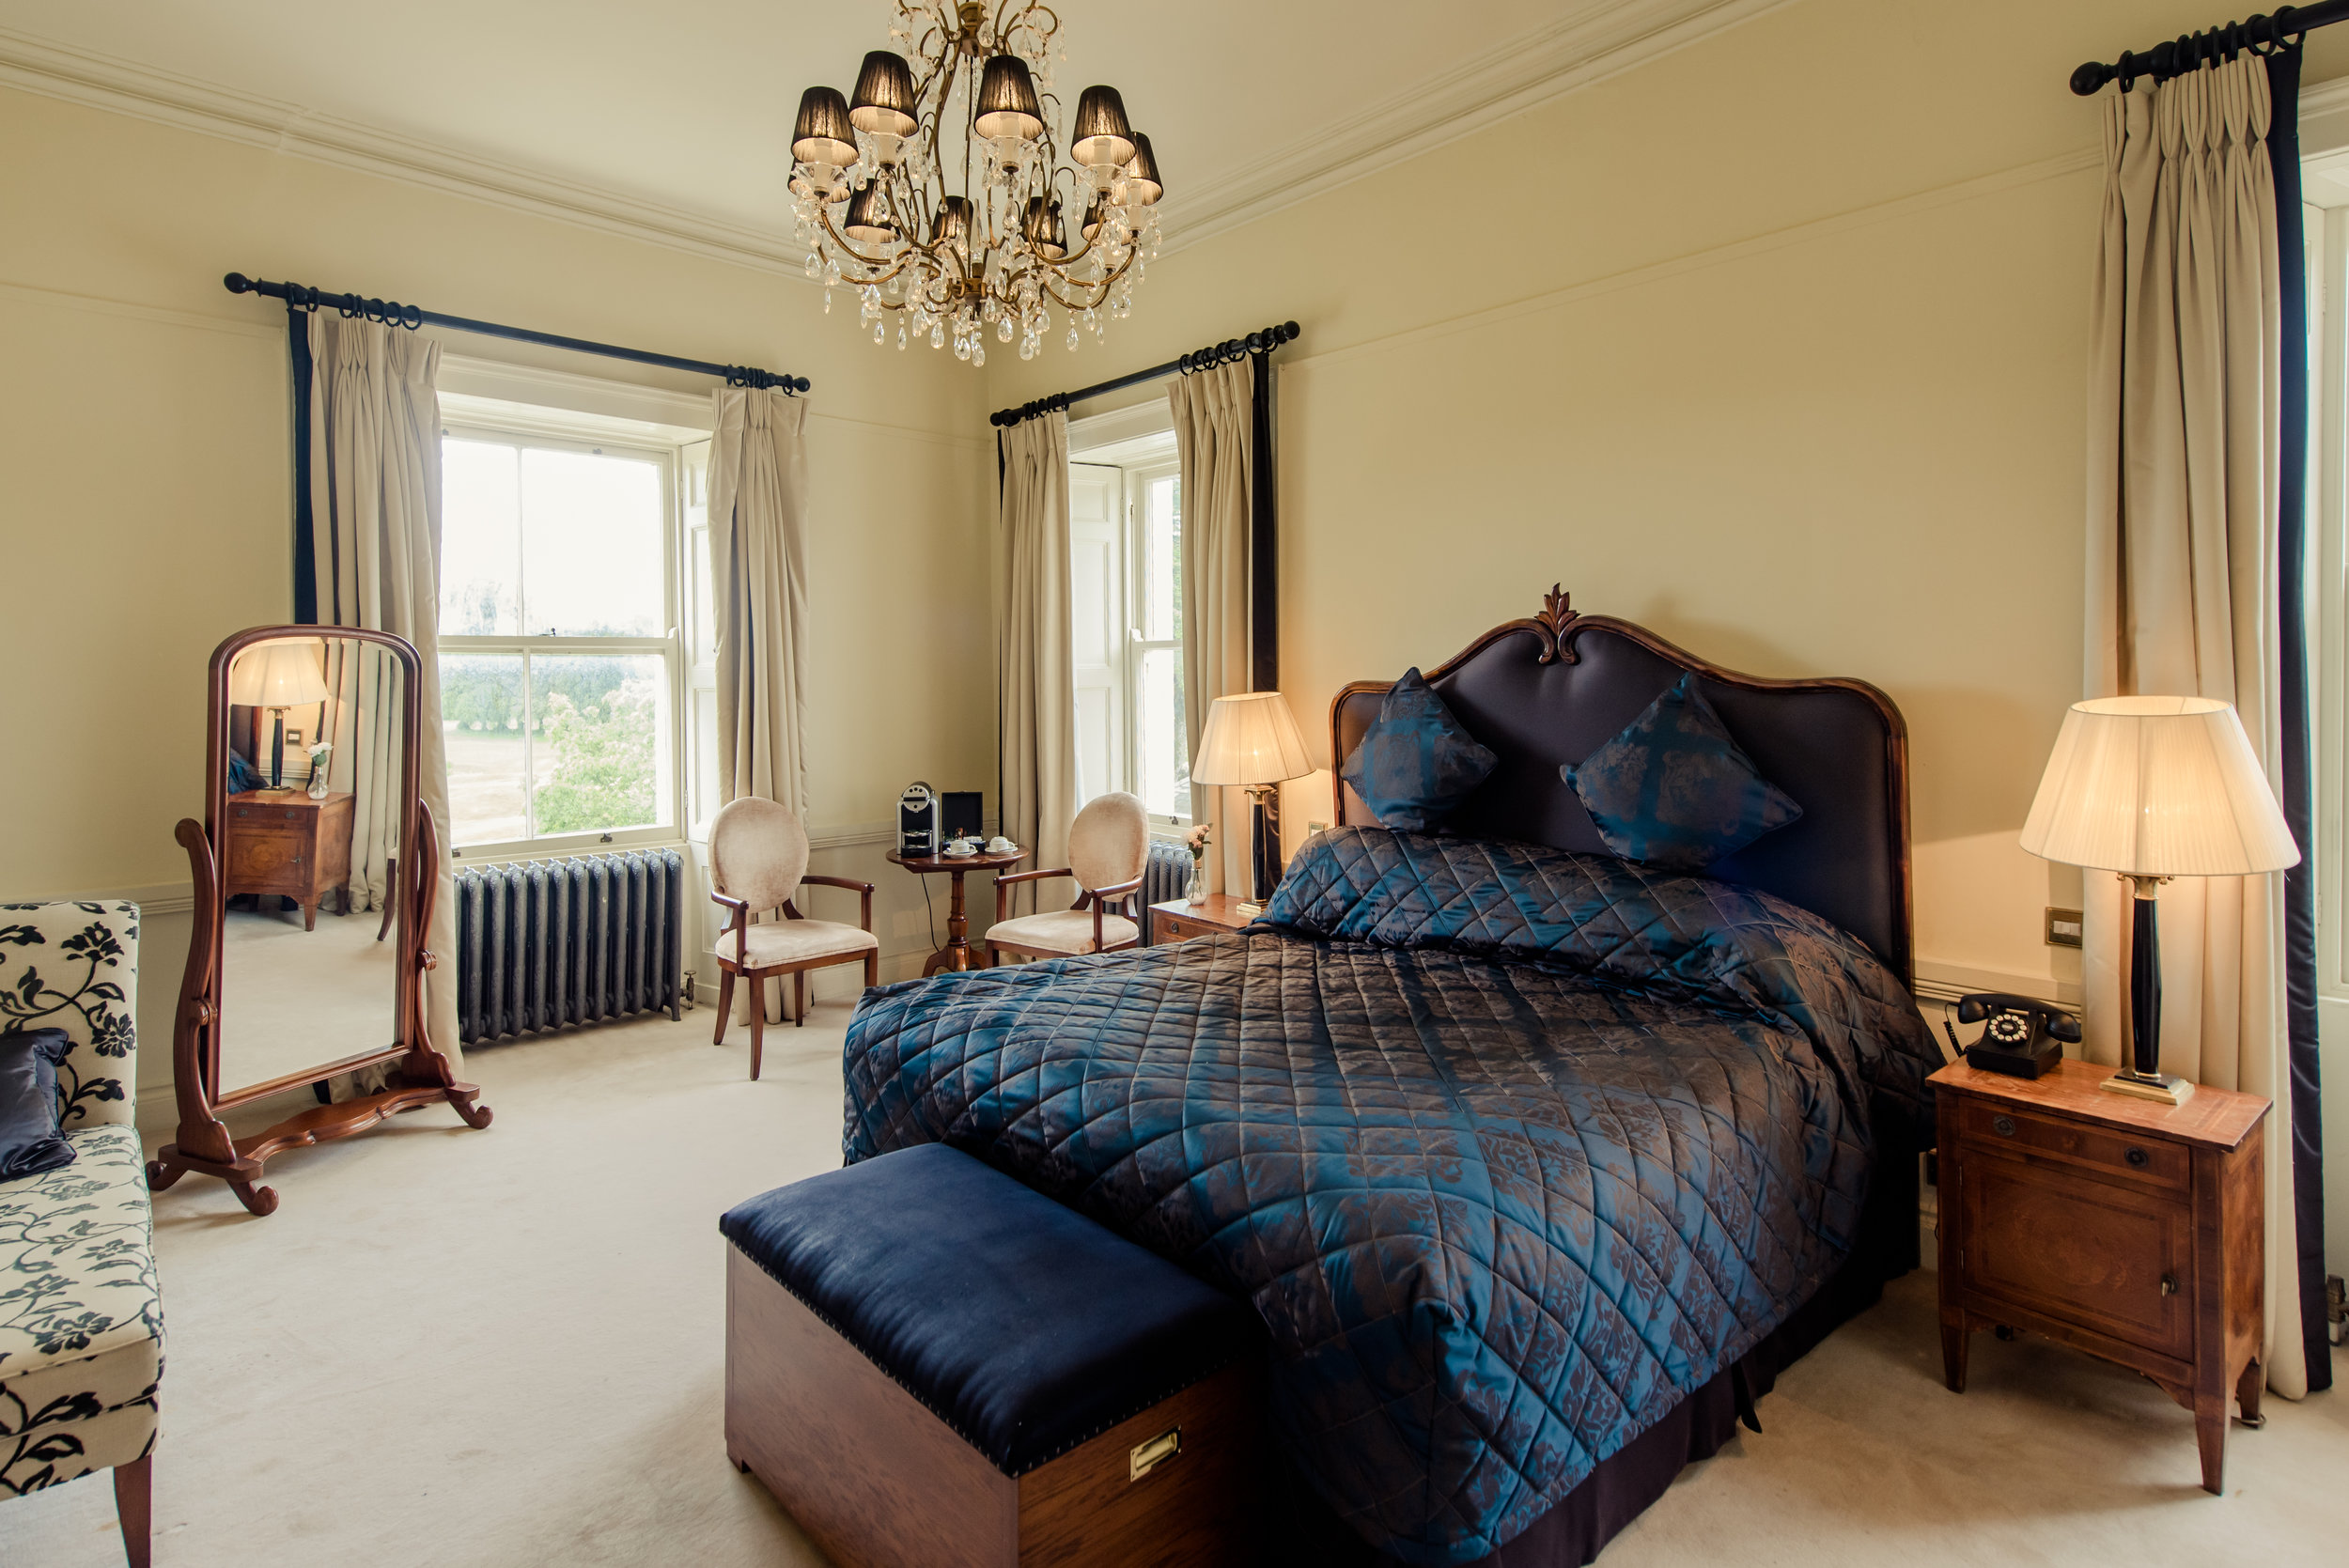 Tulfarris Hotel & Golf Resort Manor House bedroom entire view with mirror and window views.jpg